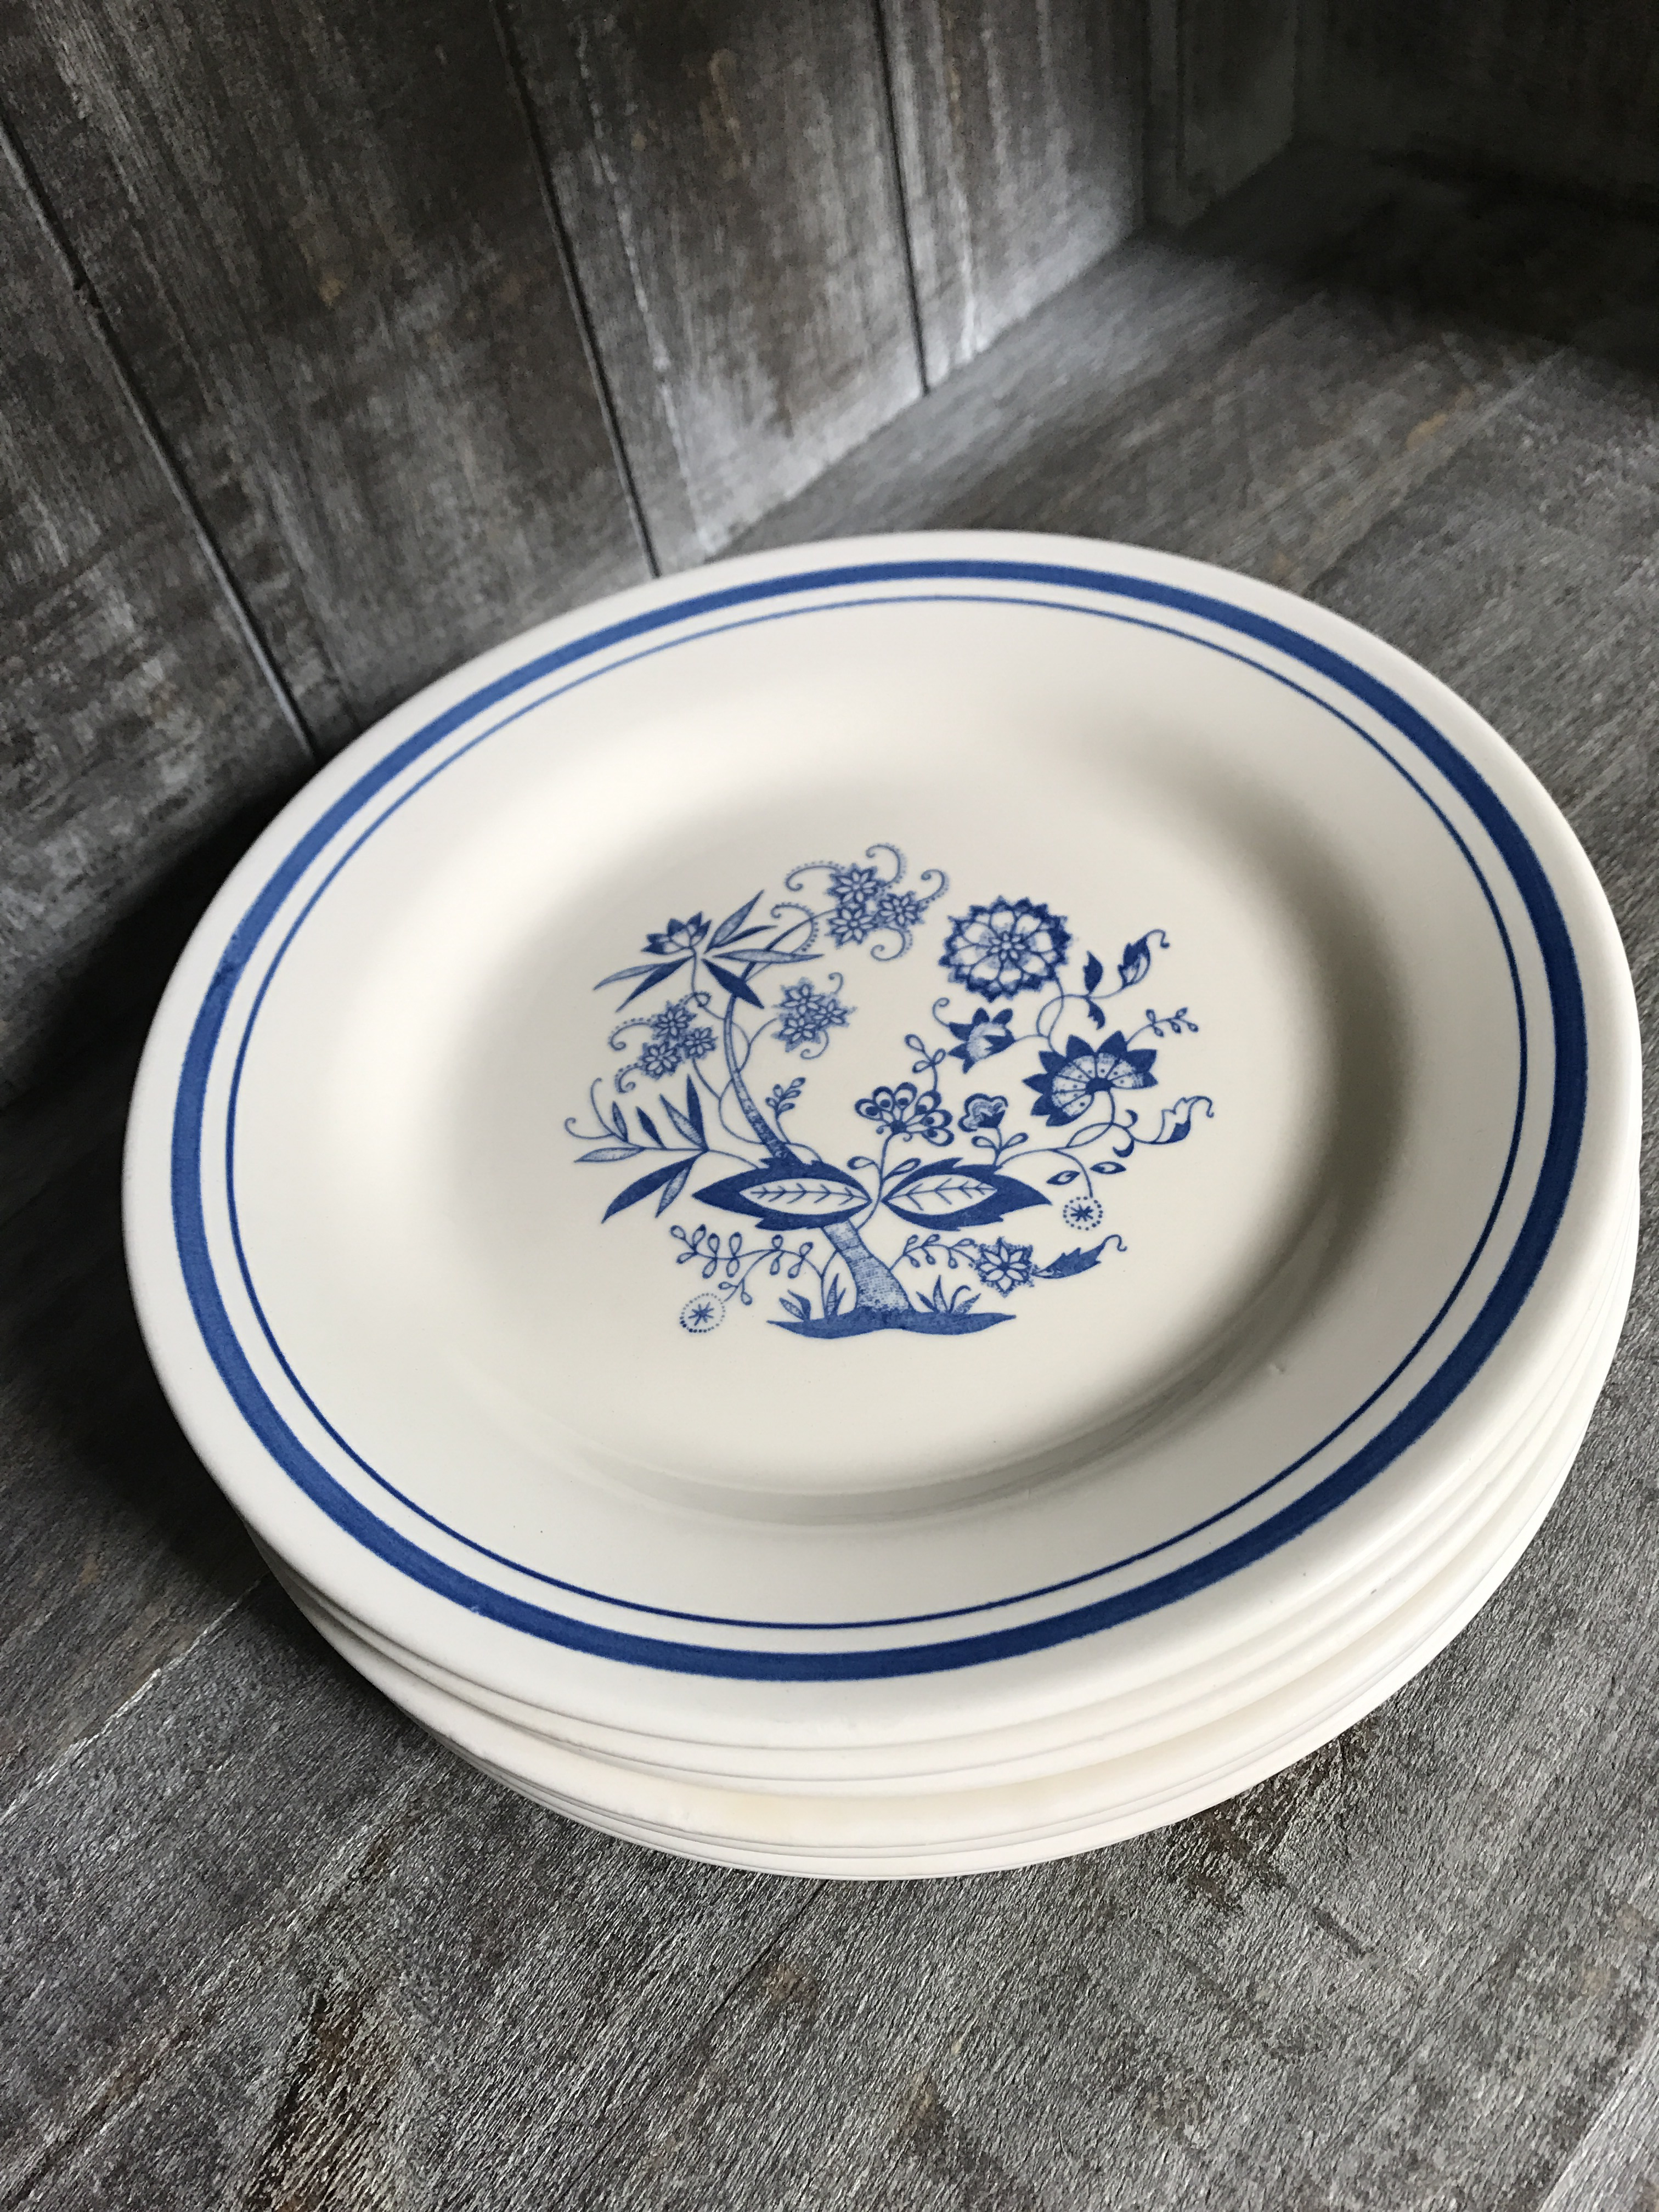 Vintage Blue u0026 White Oxford Luncheon Plate - Set of 7 - Image 3 ...  sc 1 st  Chairish & Vintage Blue u0026 White Oxford Luncheon Plate - Set of 7 | Chairish